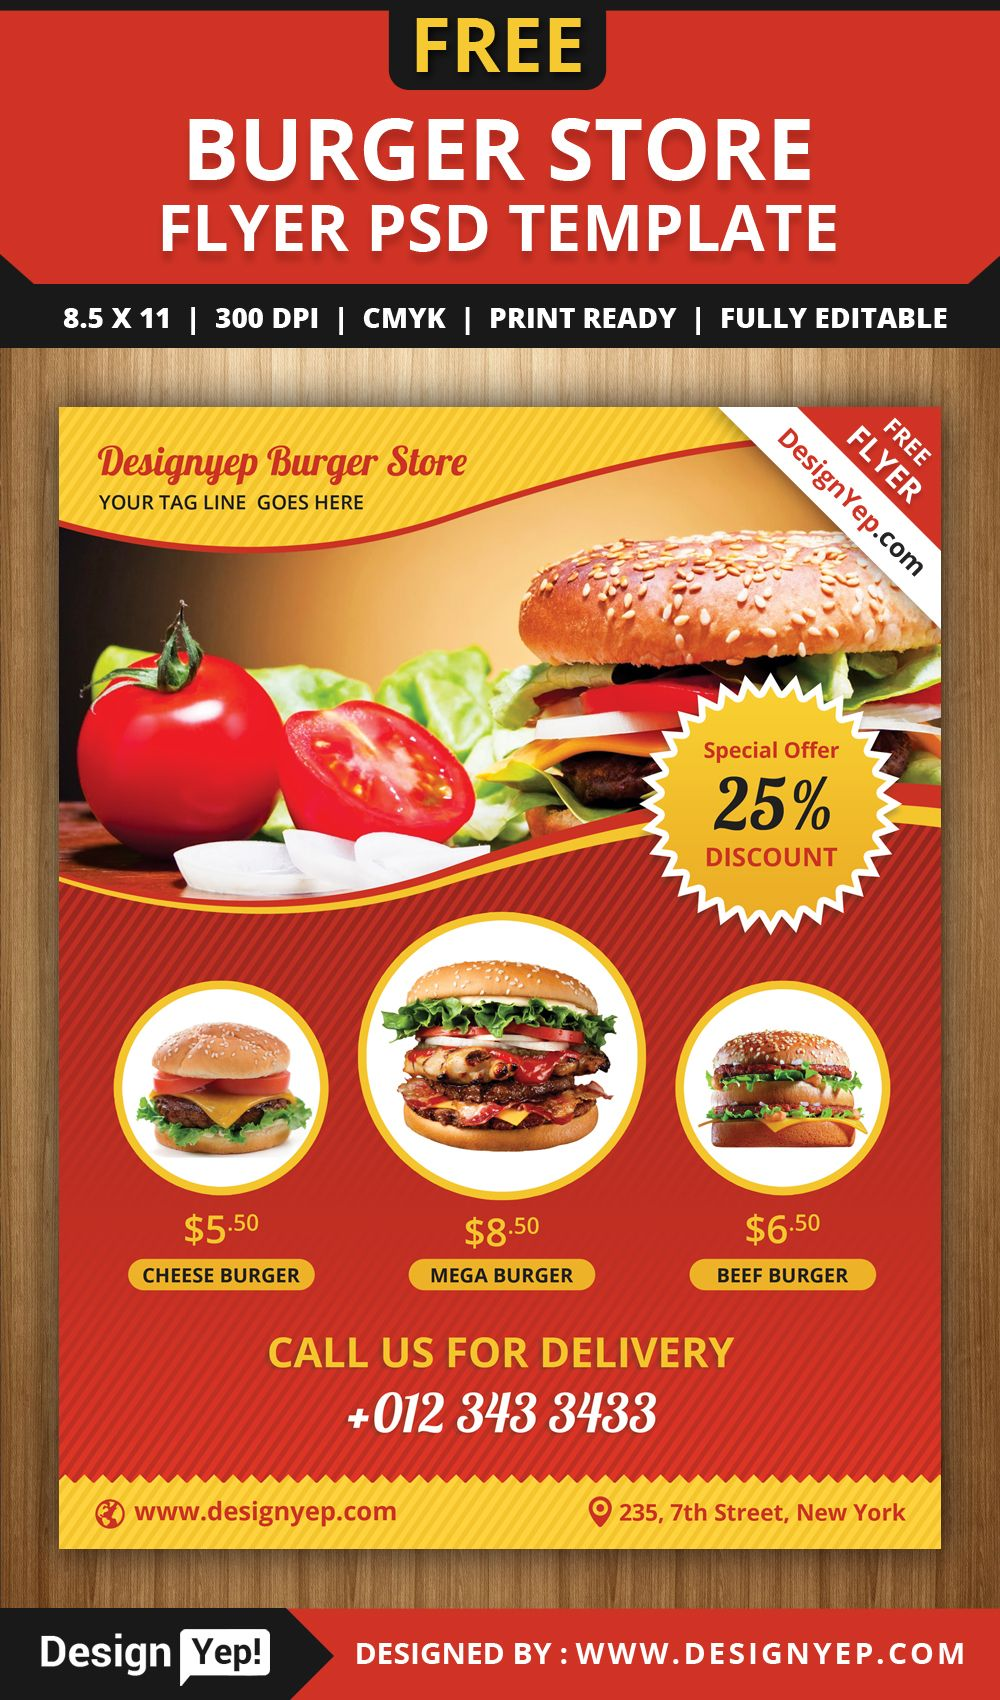 Free burger store flyer psd template 1988 desingyep free for Free food brochure templates